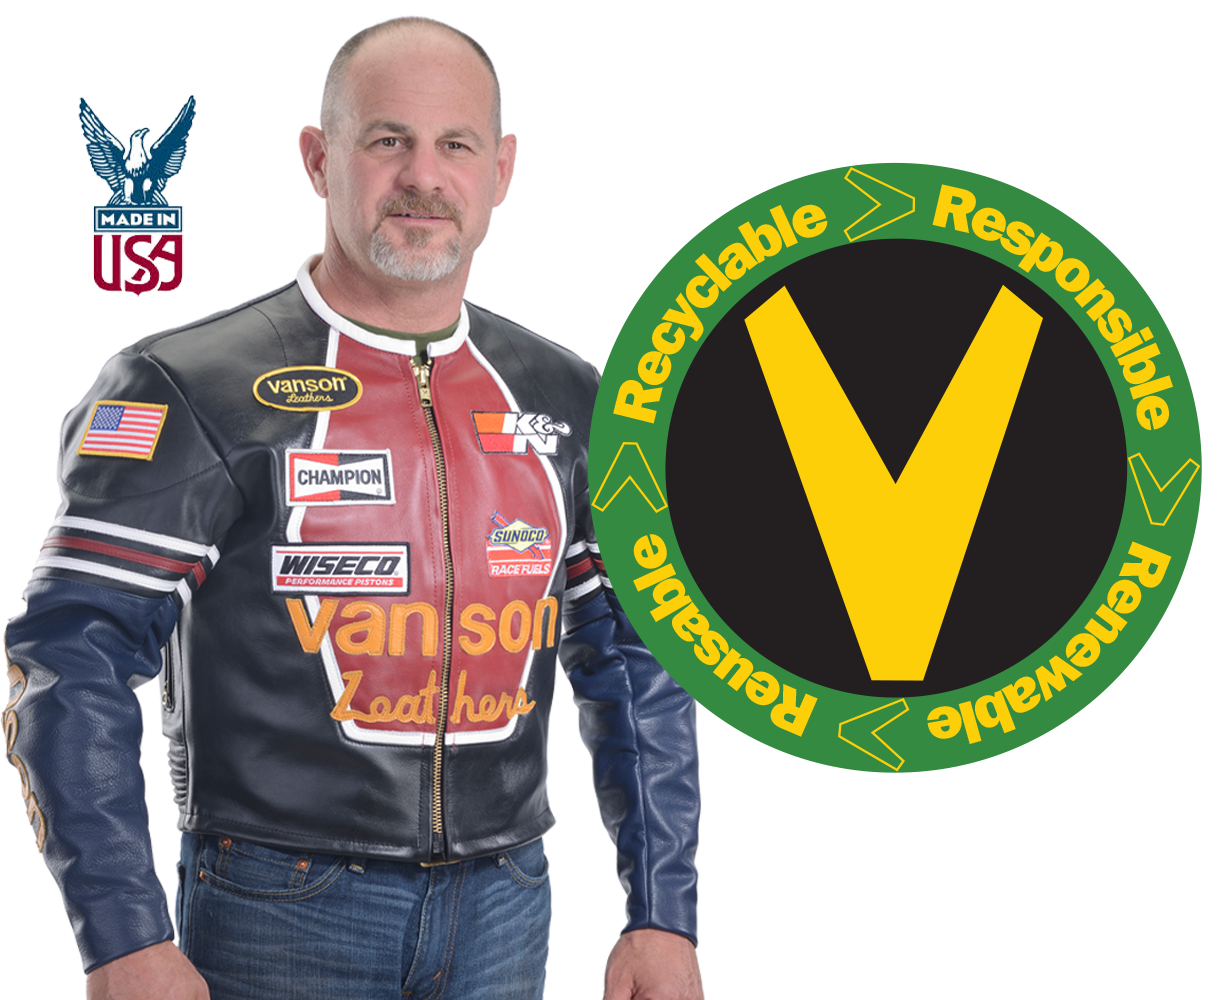 Used, overstock, and odd sized Motorcycle Jackets by Vanson